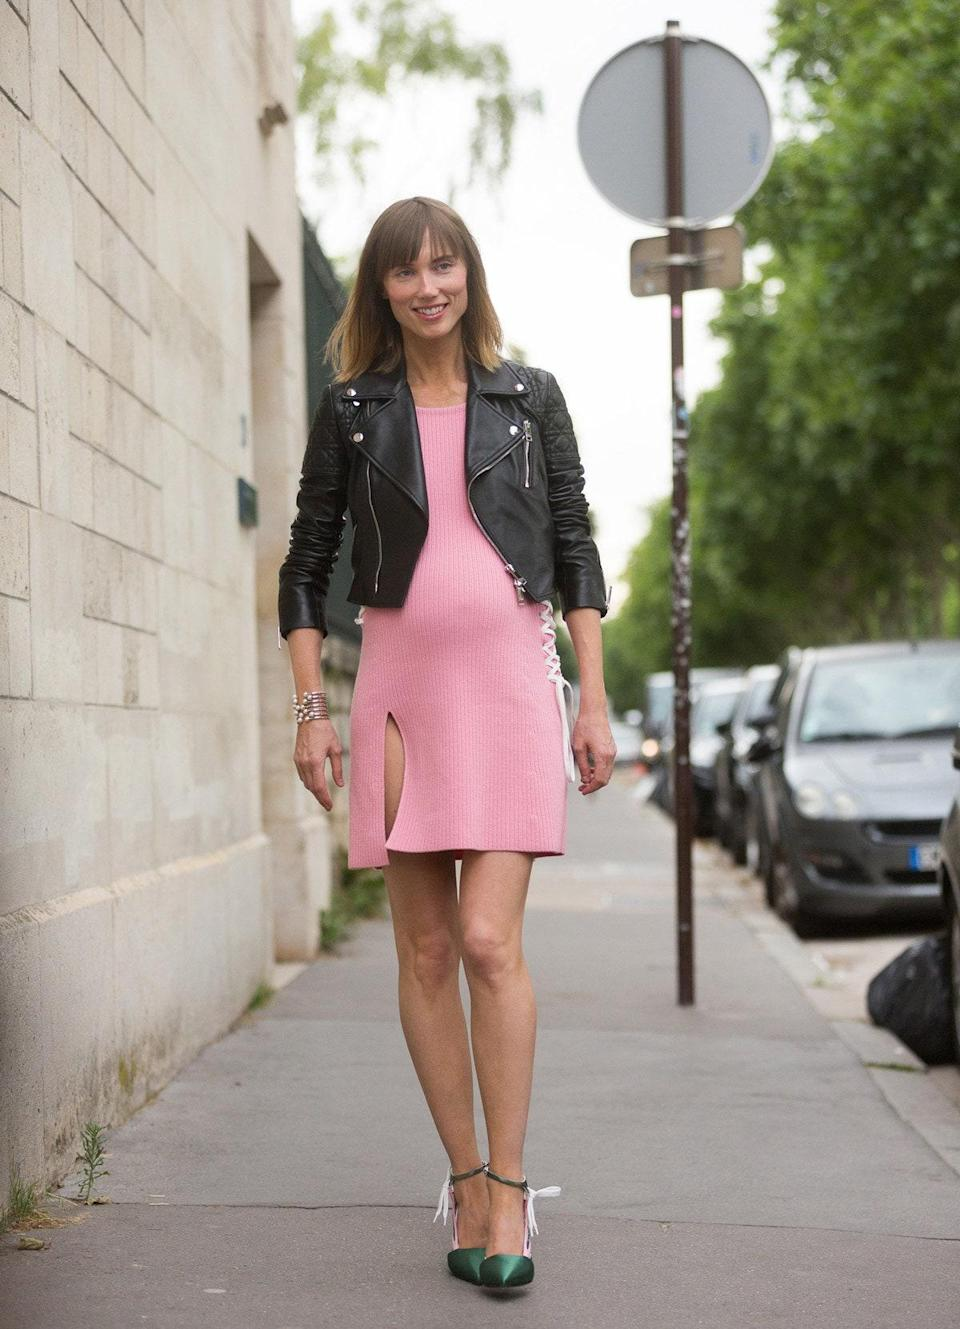 """<p>""""You will be surprised how many pieces you can wear well into your pregnancy,"""" says Nasiba Adilova, cofounder of <a href=""""https://www.thetot.com/"""" rel=""""nofollow noopener"""" target=""""_blank"""" data-ylk=""""slk:The Tot"""" class=""""link rapid-noclick-resp"""">The Tot</a>. """"Wear skirts higher up on your waist, or belt a dress to give yourself a waist again. Get creative!"""" <a href=""""https://www.instagram.com/heymichellelee/?hl=en"""" rel=""""nofollow noopener"""" target=""""_blank"""" data-ylk=""""slk:Michelle Lee"""" class=""""link rapid-noclick-resp"""">Michelle Lee</a>, editor-in-chief of <a href=""""https://www.allure.com/?mbid=synd_yahoo_rss"""" rel=""""nofollow noopener"""" target=""""_blank"""" data-ylk=""""slk:Allure"""" class=""""link rapid-noclick-resp""""><em>Allure</em></a><em>,</em> tells us that she found herself reaching for body-hugging dresses more and more when she was pregnant: The dress plus """"an eighties-like blazer, with sleeves pushed up to showcase wrists, which were my only [unaffected by pregnancy] body part after a while, and a low, chunky heel—that's an instant pregnant-lady work outfit.""""</p> <p>What's more, a trend or style (say, polka dots or maxi dresses) you might not typically gravitate toward might just become the MVP of your closet during those nine months: """"I loved wearing stripes when I got really large, which was odd, but I kind of loved how much it accentuated my giant belly,"""" recalls Stella Bugbee of her surprising pregnancy-wardrobe workhorse. """"I had a stretchy navy-and-white striped dress that became a long shirt when my stomach got to be super big.""""</p> <p>For <a href=""""https://www.instagram.com/chrisellelim/?hl=en"""" rel=""""nofollow noopener"""" target=""""_blank"""" data-ylk=""""slk:Chriselle Lim"""" class=""""link rapid-noclick-resp"""">Chriselle Lim</a>, <a href=""""http://thechrisellefactor.com/"""" rel=""""nofollow noopener"""" target=""""_blank"""" data-ylk=""""slk:blogger"""" class=""""link rapid-noclick-resp"""">blogger</a>, and founder of <a href=""""https://bumobrain.com/"""" rel=""""nofollow noopener"""" target=""""_blank"""" data-ylk=""""slk:BumoBrain"""" class=""""l"""